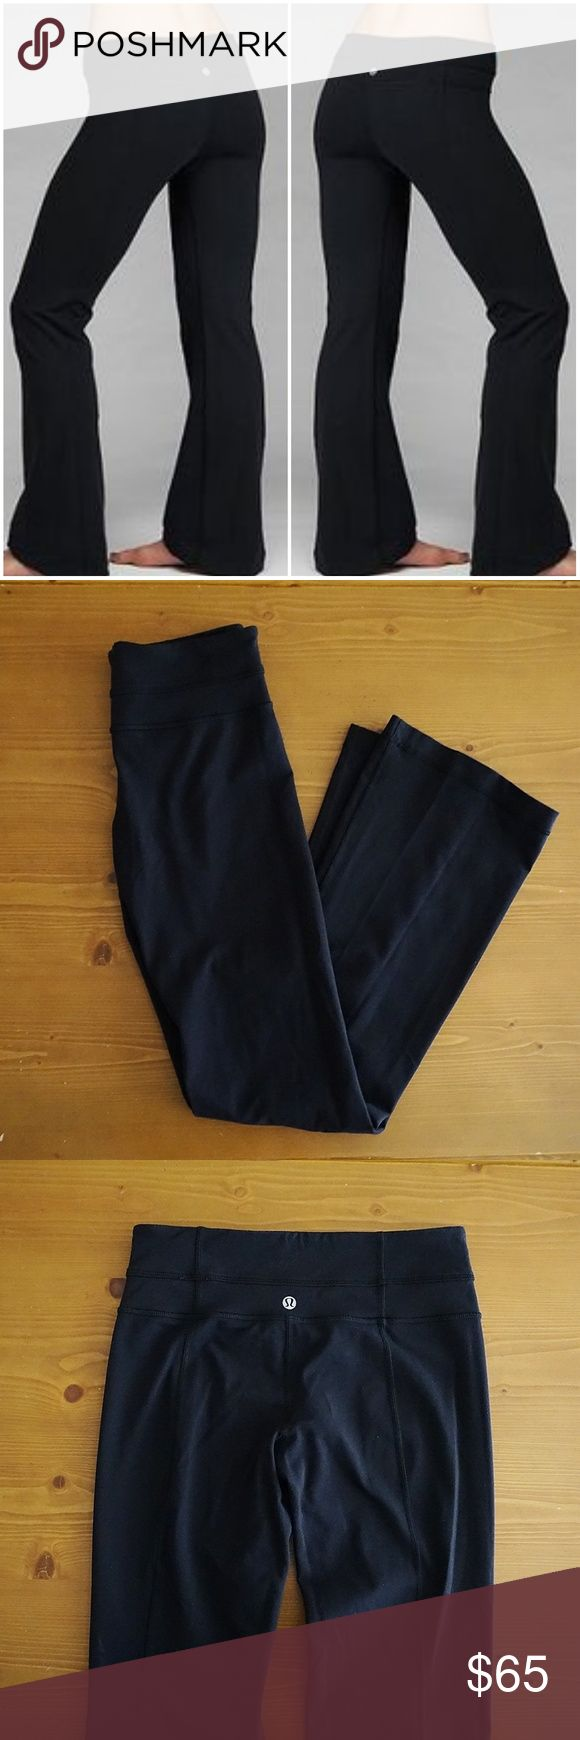 Lululemon Groove Flare Yoga Pants Black Lululemon Groove Flare Yoga Pants Black Size 4. Authentic. Really comfortable. Worn a few times. No fading, rips, or Stains. No tags.  Length 37in Inseam 30in Rise 8in Waist flatlay 12.5in (but stretches)  Offers Welcome Ships 1-3 Days Bundle for a Discount lululemon athletica Pants